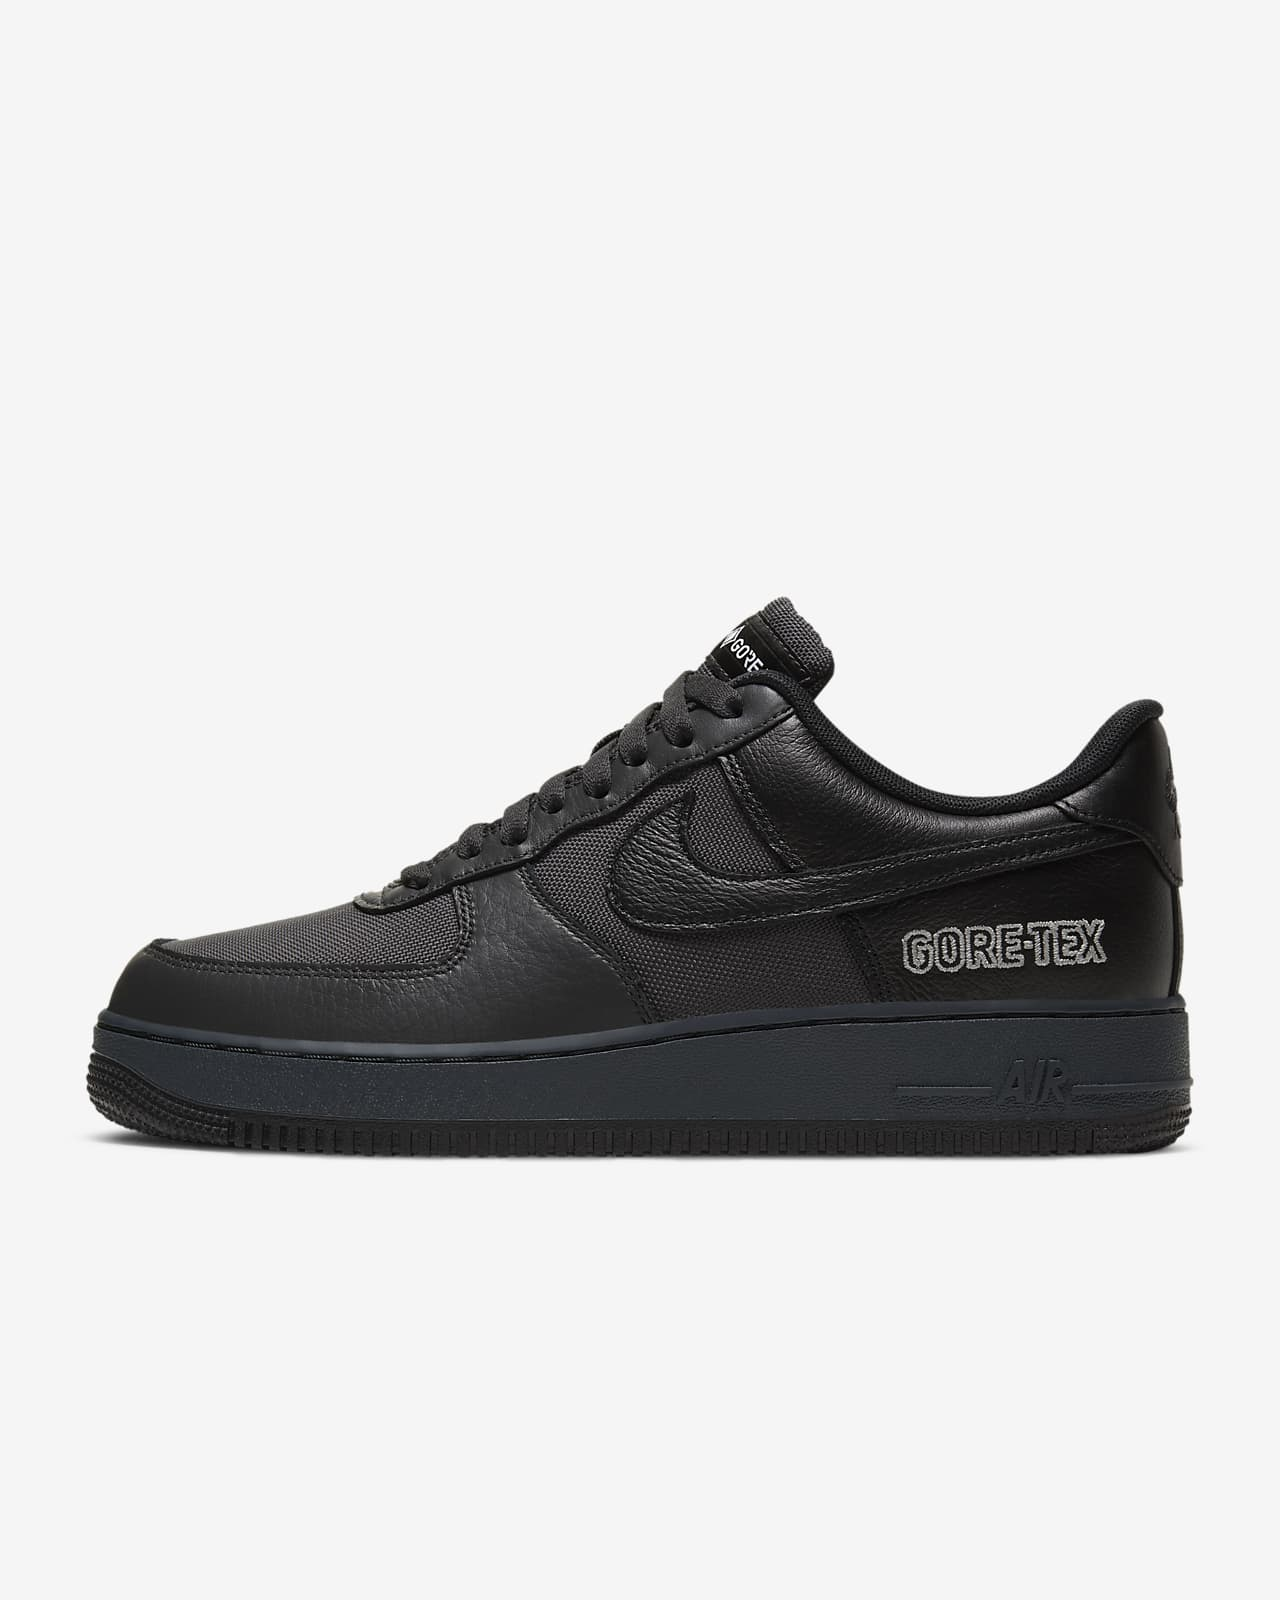 Nike Air Force 1 GTX Men's Shoe